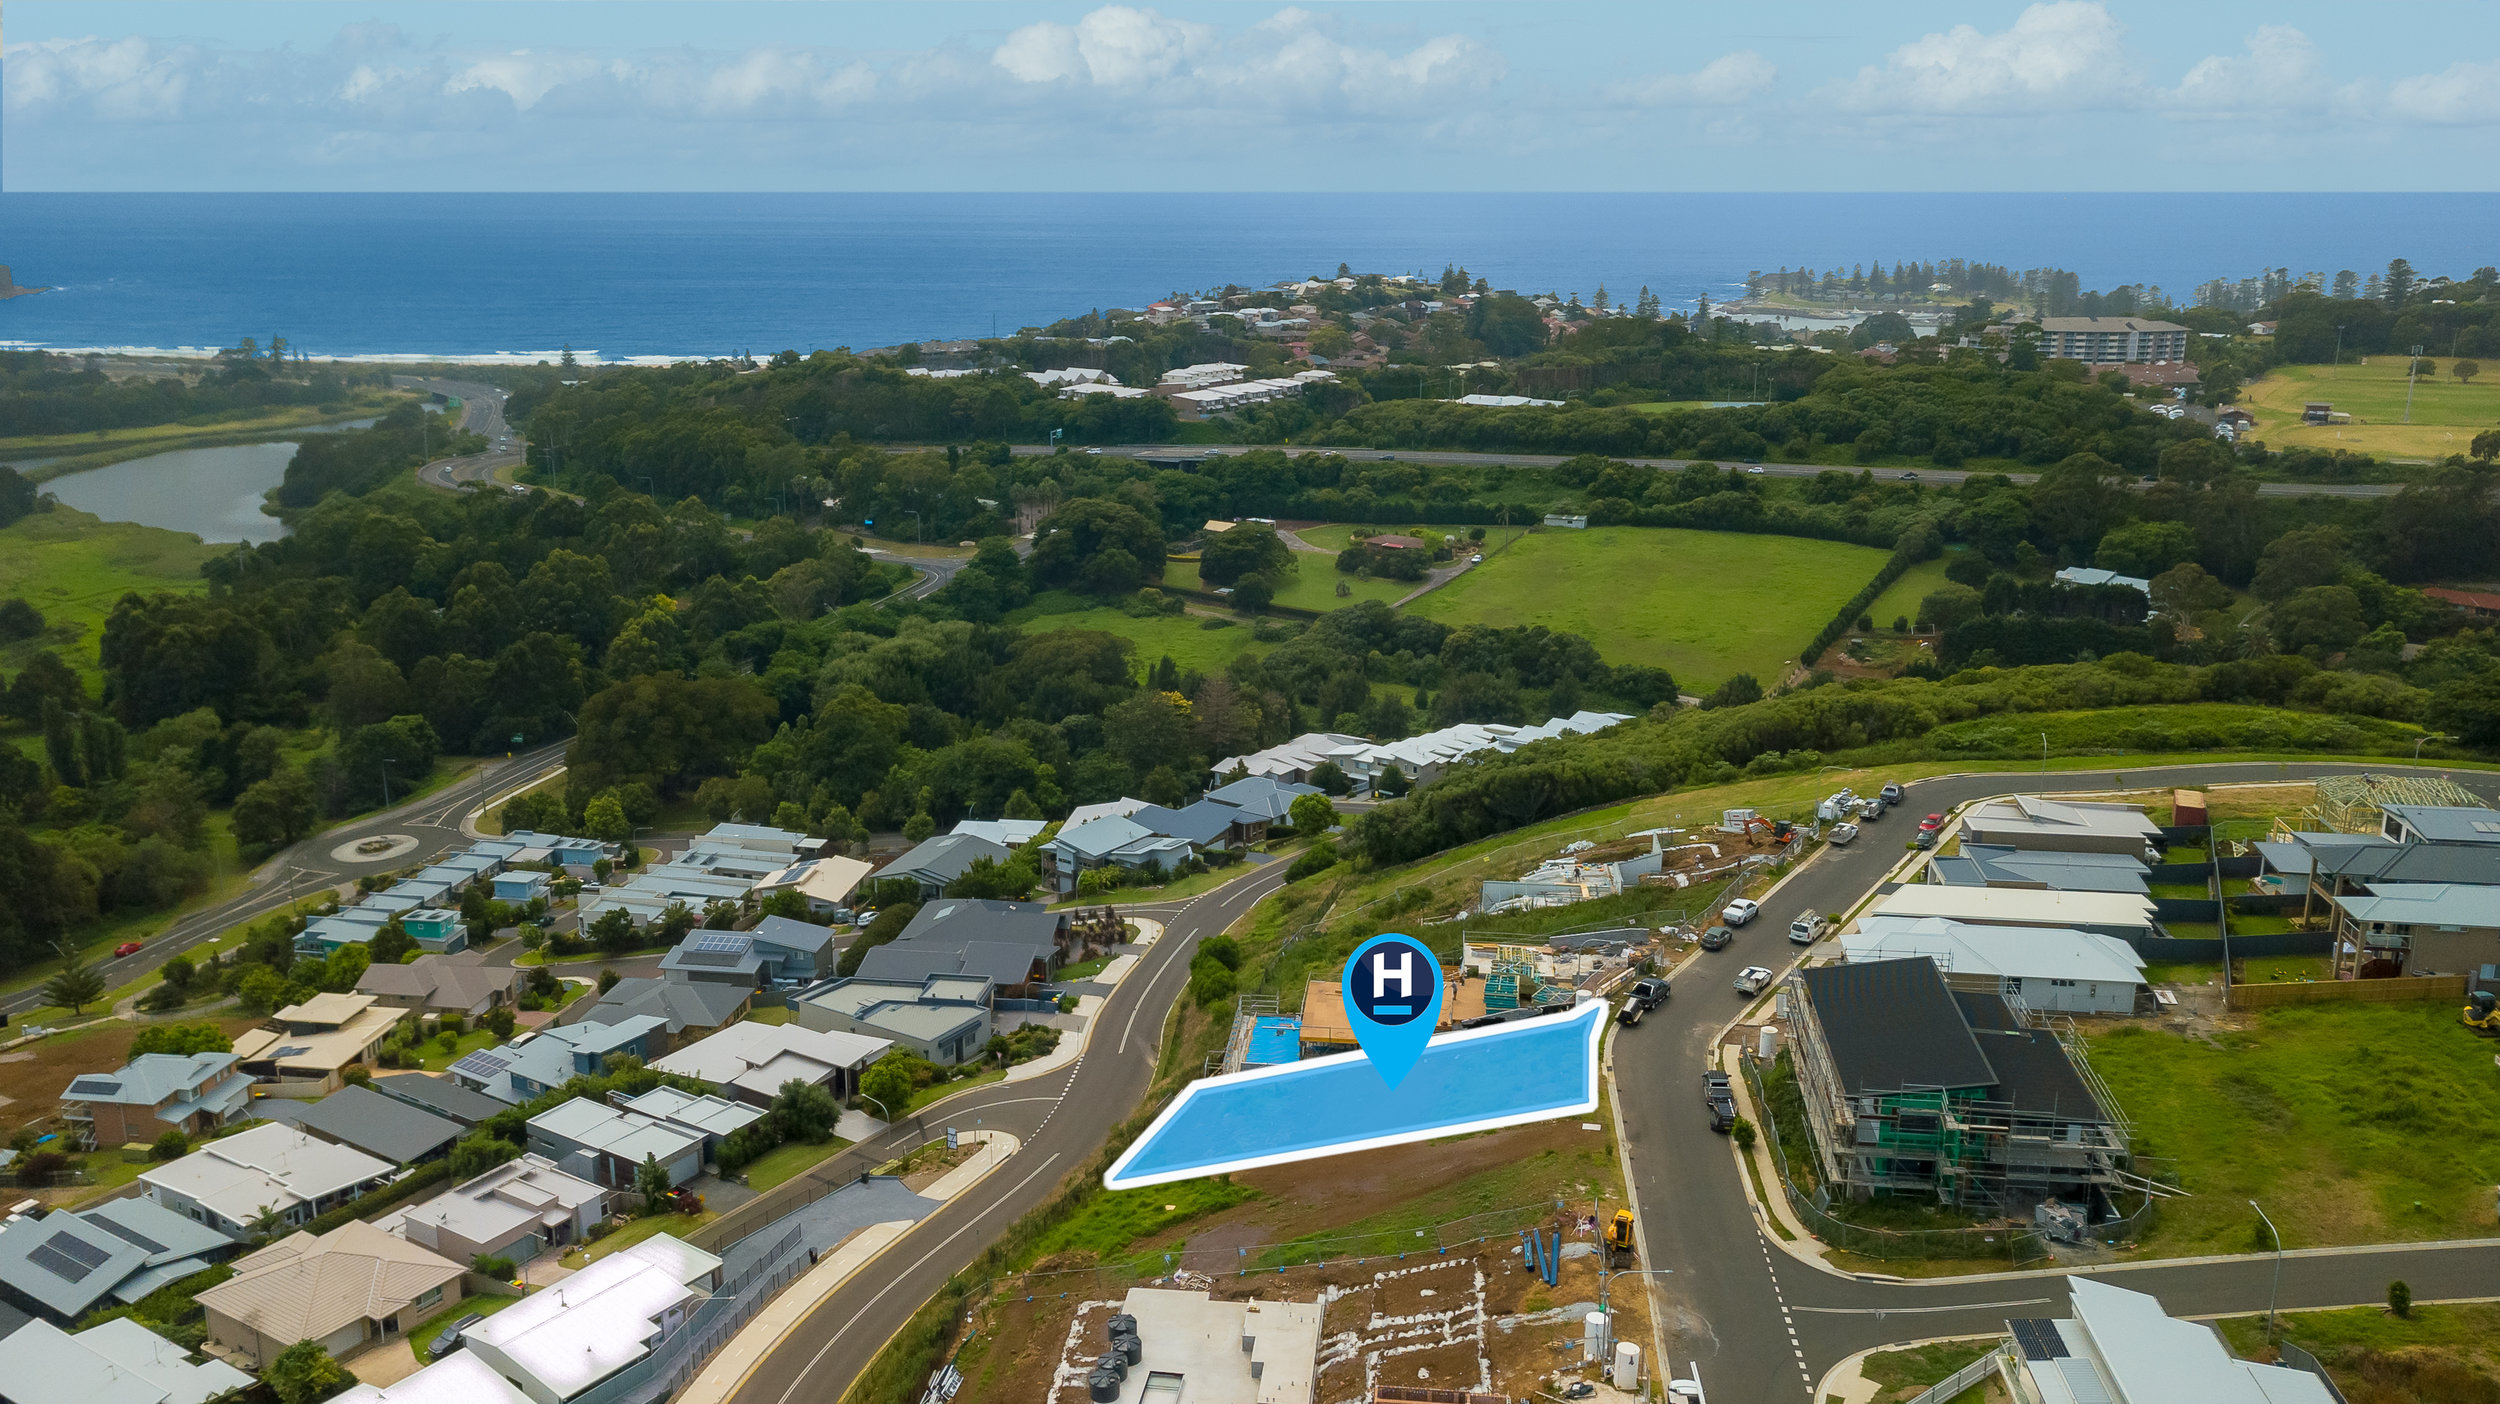 Kiama, Shellharbour, Gerringong, Berry, Wollongong, South Coast, Illawarra,  Commercial real estate photographer, Commercial real estate exteriors, architectural Photography, architectural photographer, Commercial real estate photographer kiama, kiama Commercial real estate, commercial real estate Photographer kiama, kiama Photographer, architectural photographer, Architectural photography kiama, kiama architecture, Commercial real estate photographer, Commercial, real, estate, photographer, commercial exterior photographer, Exterior building photography, aerial Photography aerial photographer, drone Services, drone pilot, drone videographer, drone Photos, drone photographer kiama, kiama aerial Photography, commercial space photographer, Commercial spaces, commercial real estate Photos, commercial real estate photography Best, best commercial real estate photography, Best commercial real estate photographer in kiama, shutter speed studios, ben greaves commercial real estate photography, best architectural photographer, architecture, architecture phot, architecture photography, architecture photographer kiama, holiday rental photographer, vacation rental photographer, air bnb photographer, kiama air bnb photographer, kiama air b&b photographer, kiama air b and b photographer, air b and b photographer kiama, air BnB, air B&B, south coast holiday rental photographer, holiday rental photography